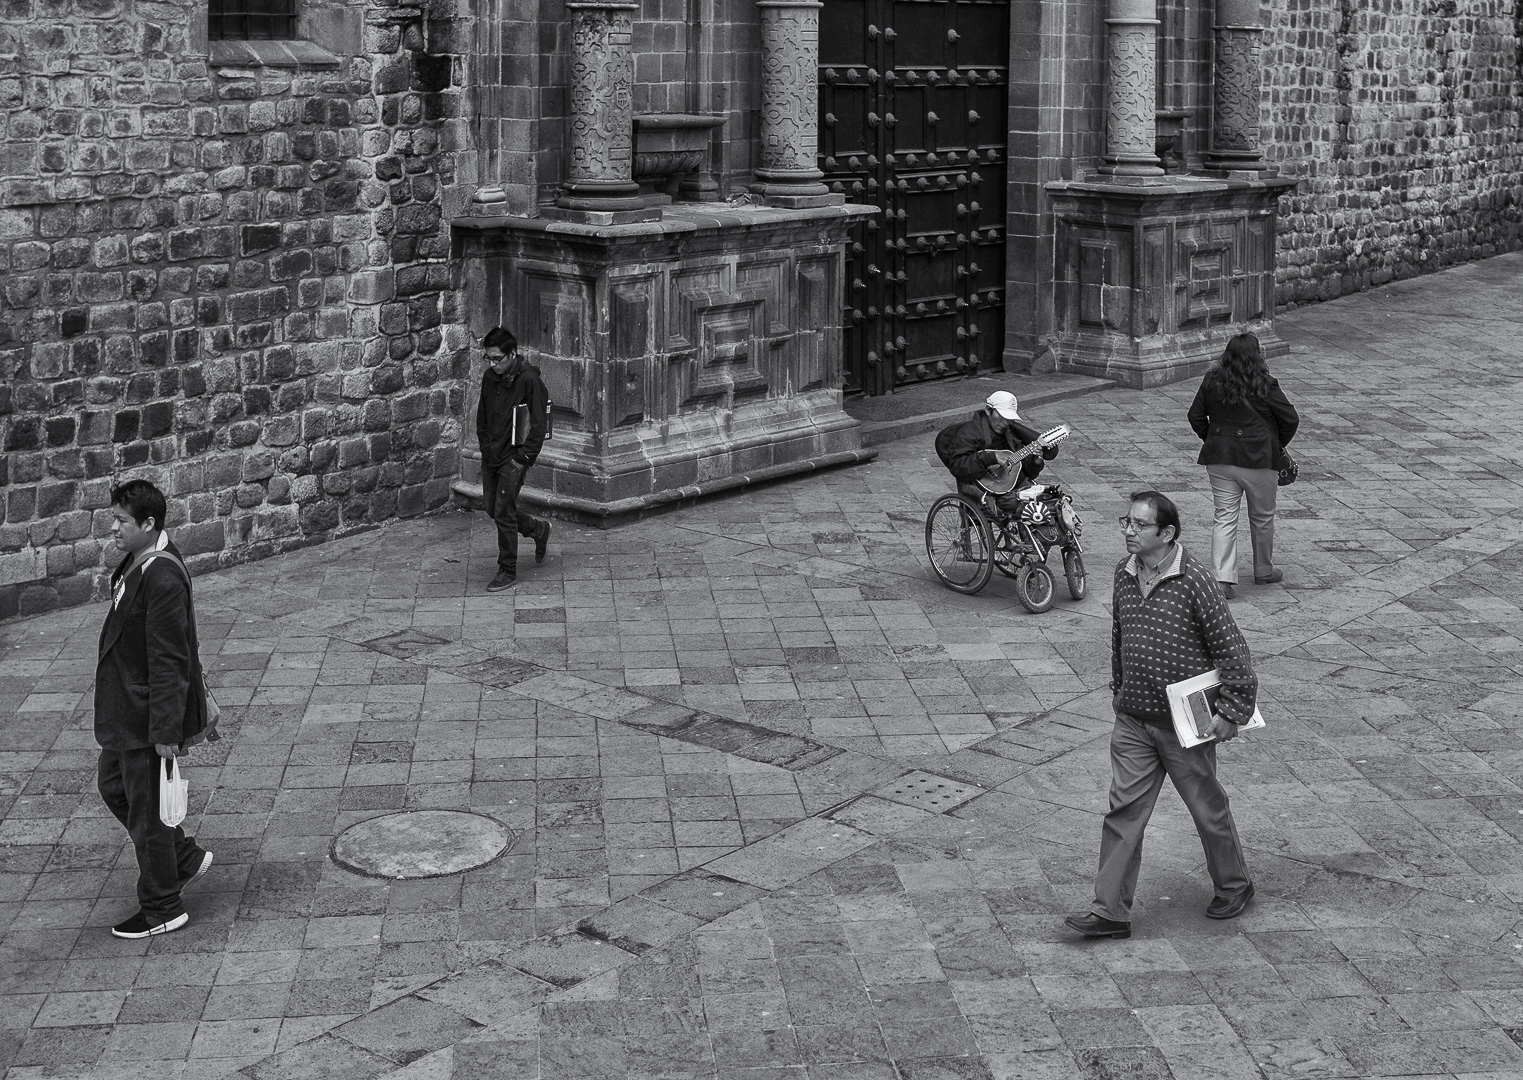 black and white street photography by Celia Ruiz de Castilla - locals of Cusco going about their daily life